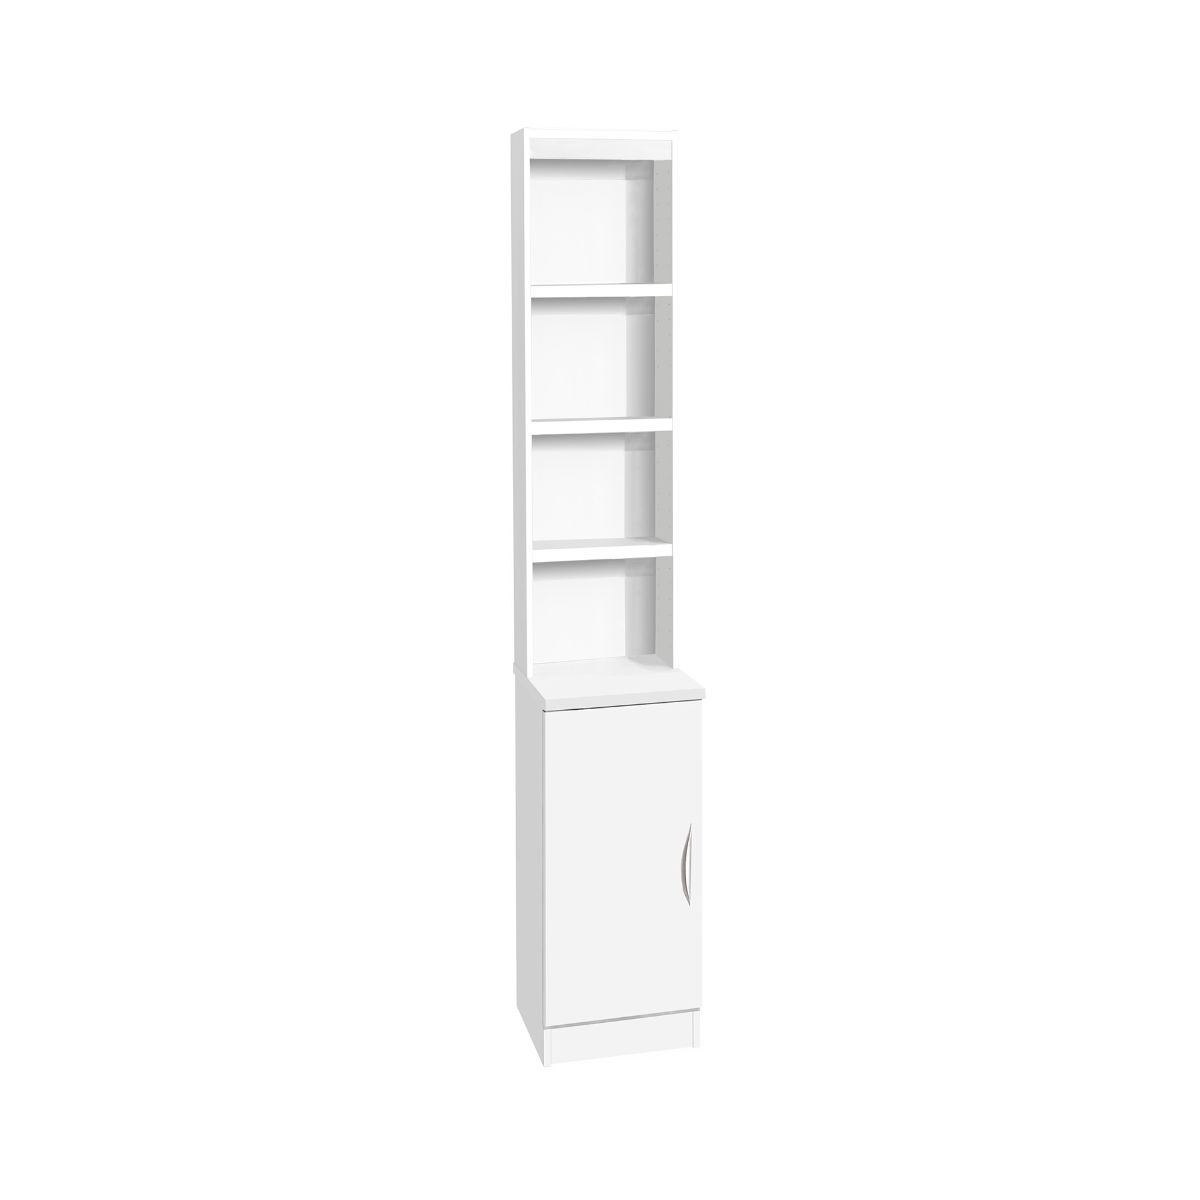 R White Desk Height Narrow Cupboard 30cm with Overshelving, White Satin